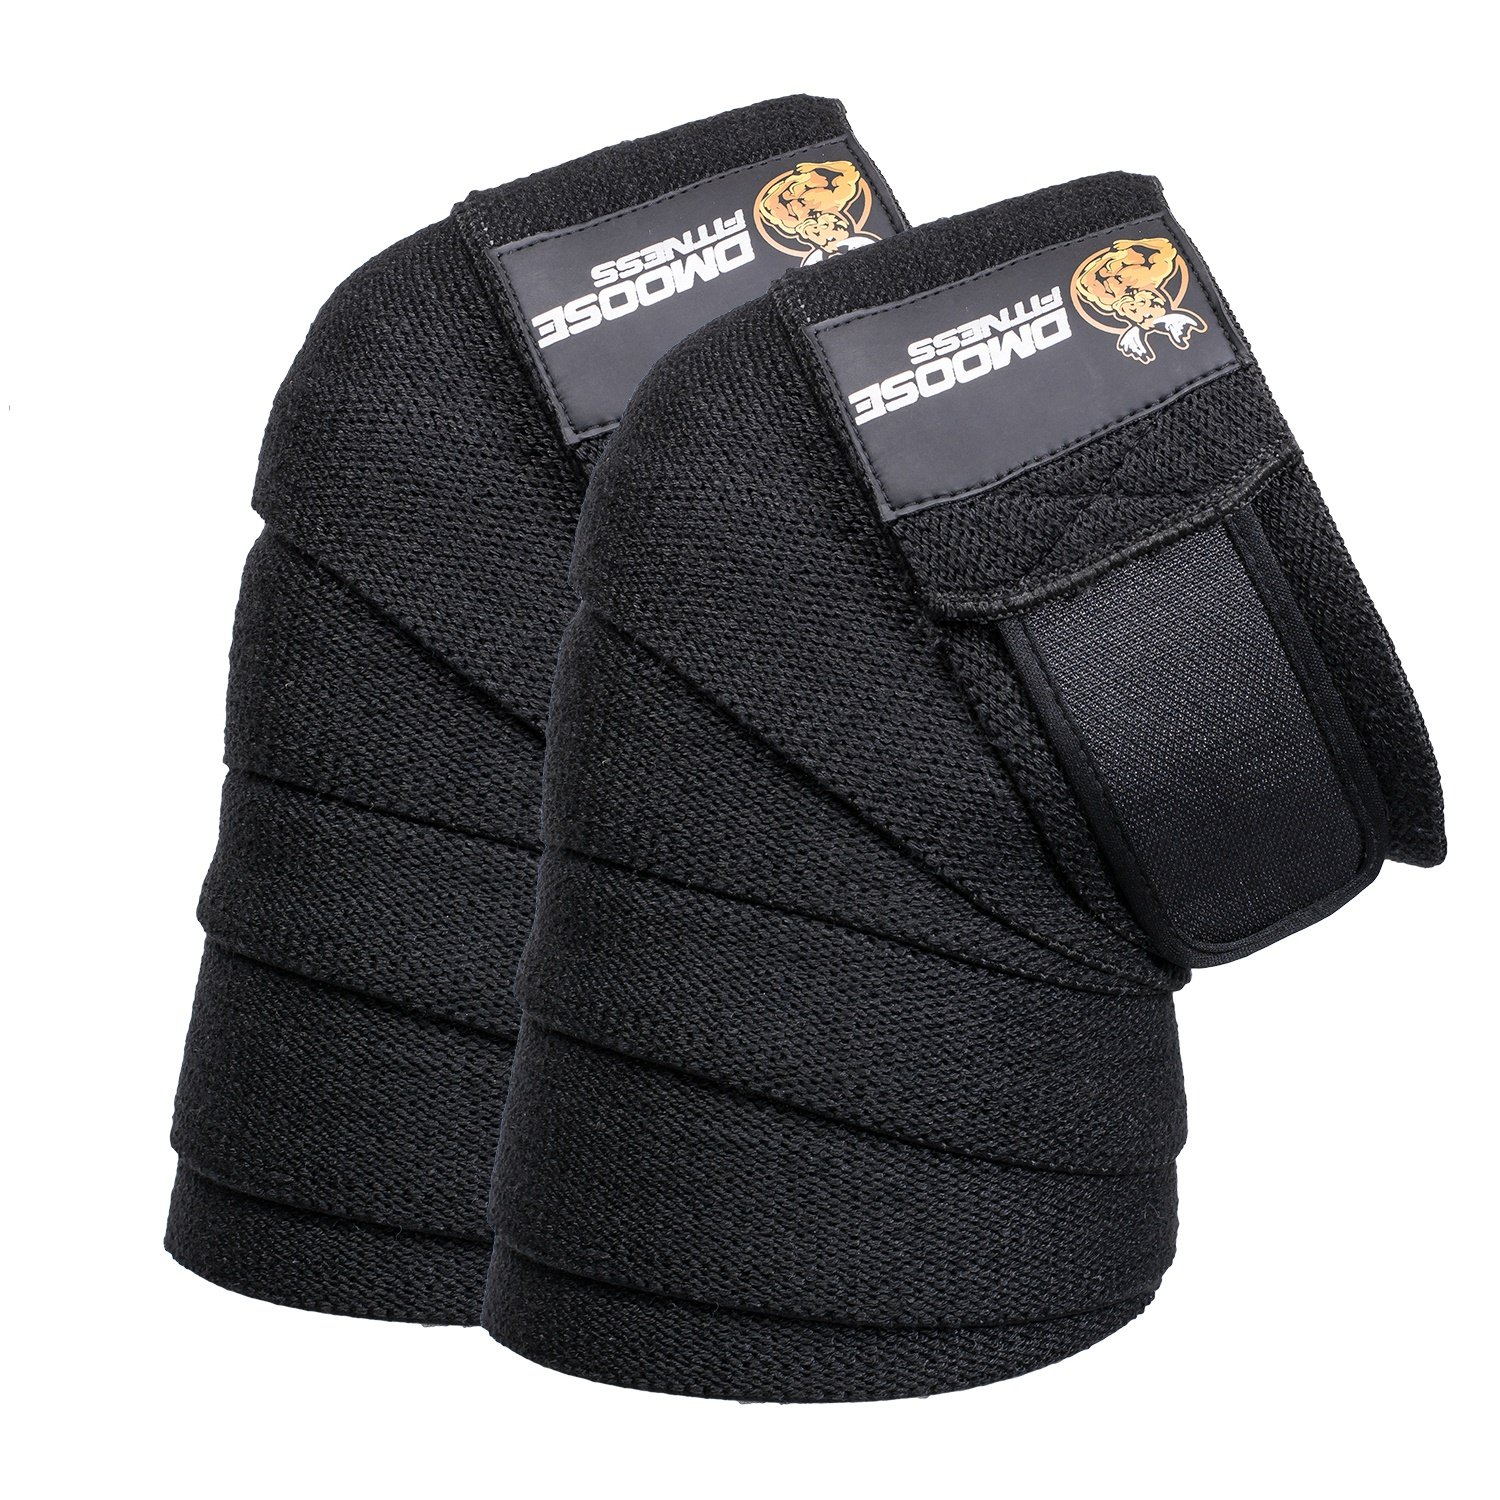 DMoose Fitness Knee Wraps - Strong Fastening Straps, Durable Stitching - Heavy Duty 78'' Elastic Compression Knee Straps to Enhance Your Powerlifting. ...